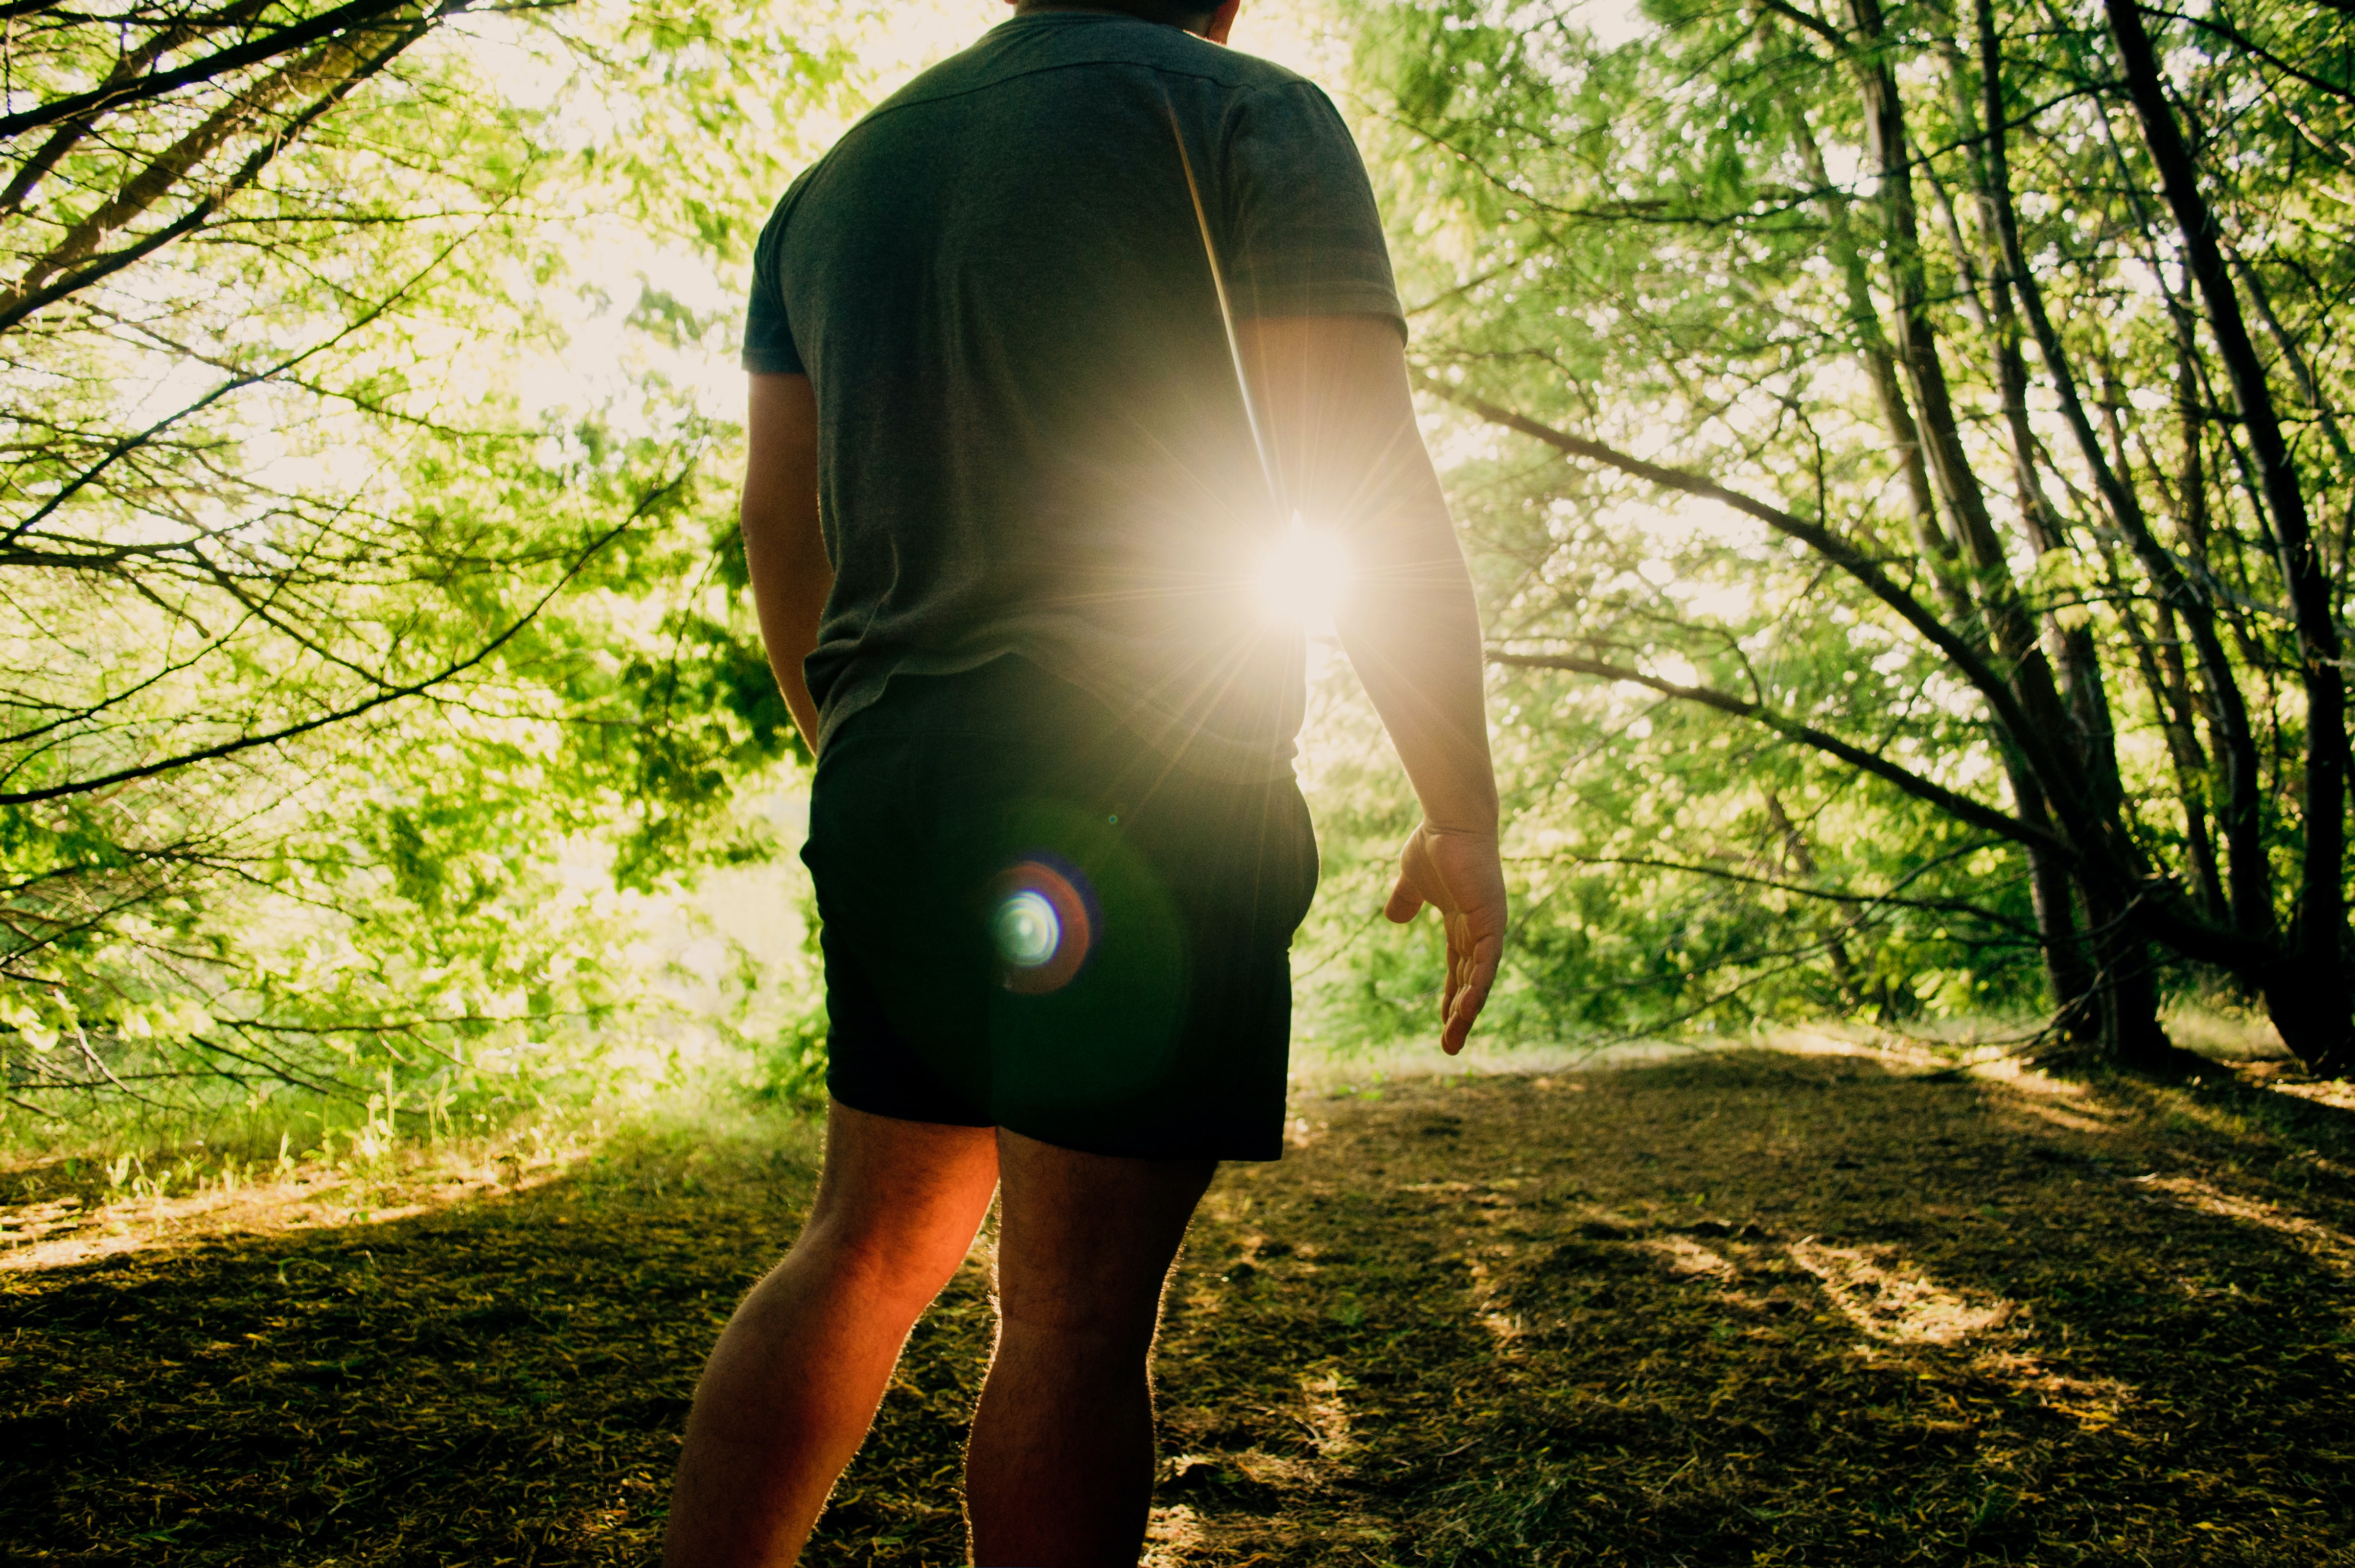 man standing on dirt path under green trees at daytime